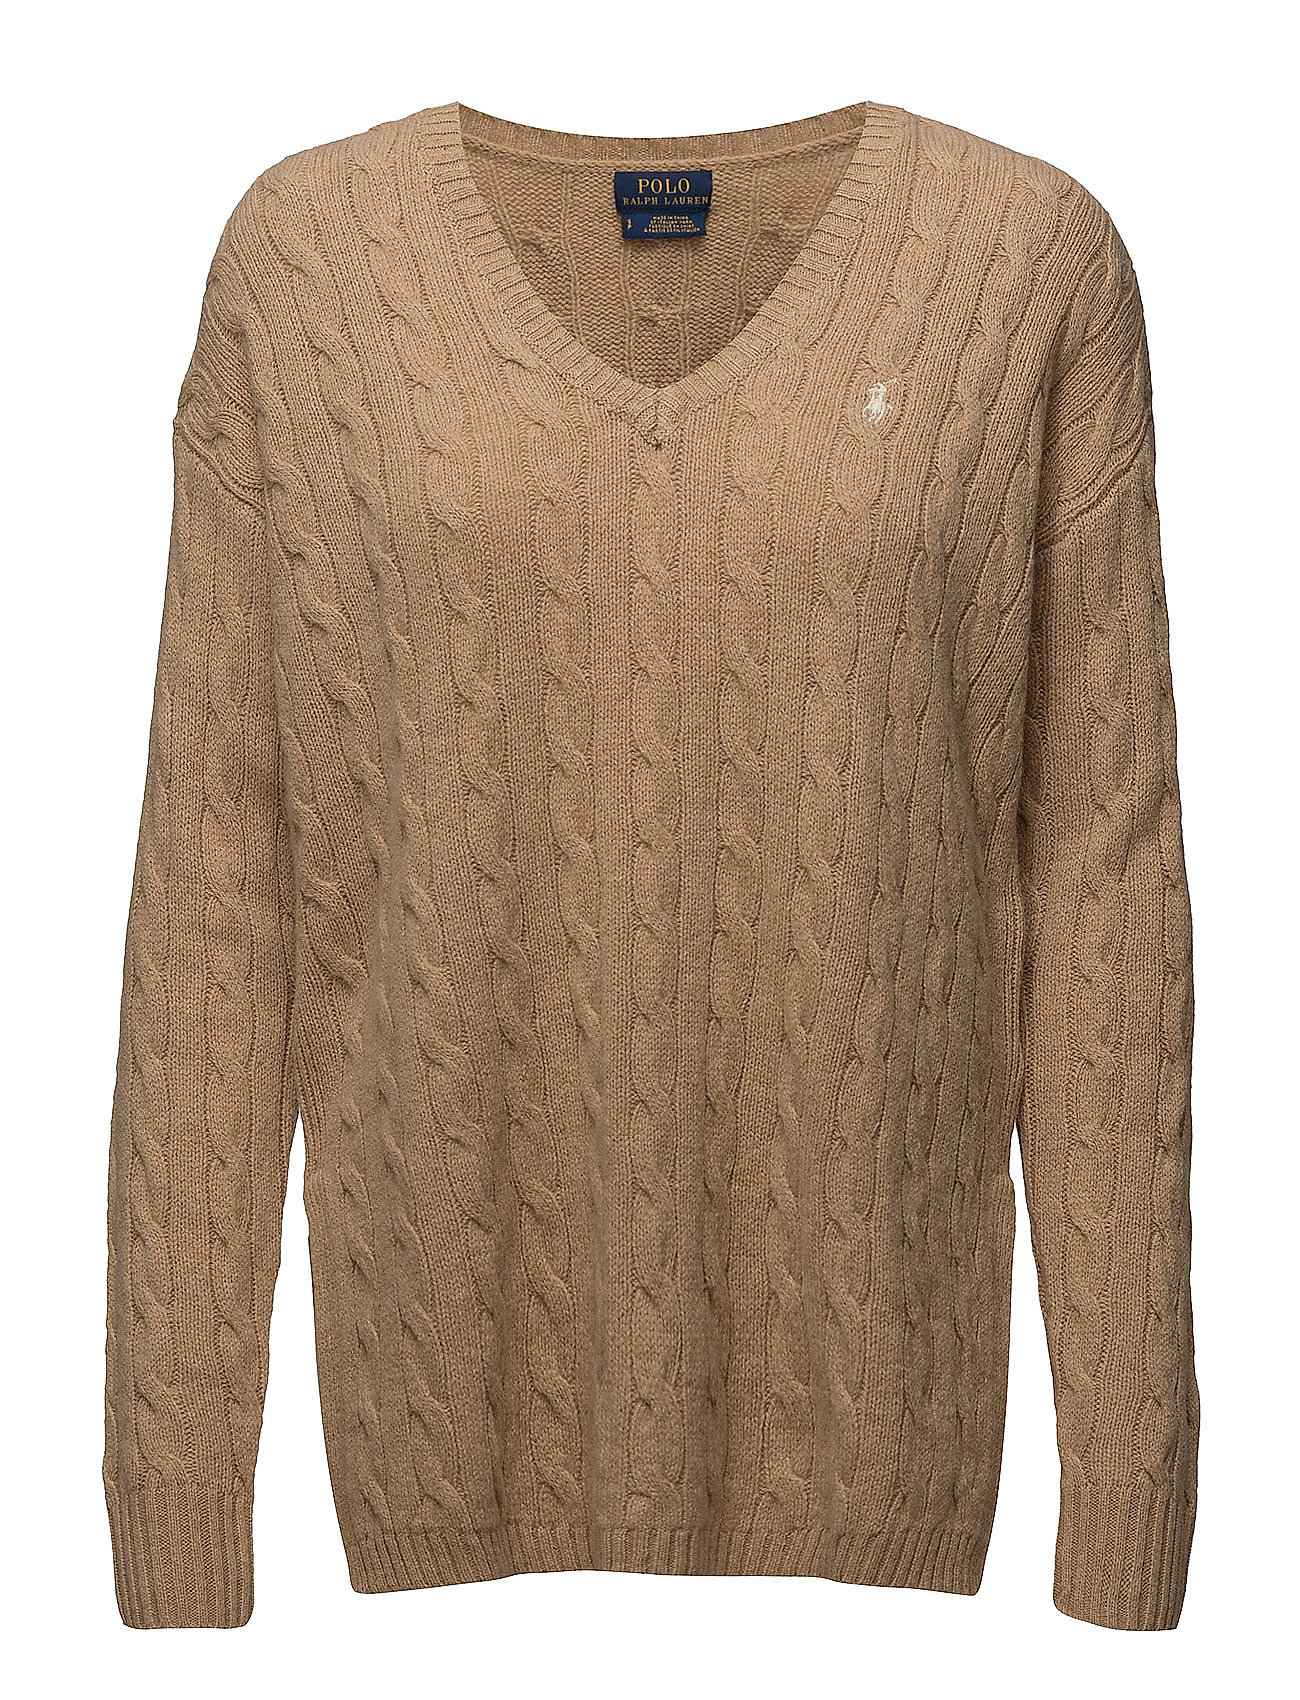 Cable-knit Side-slit Sweater (Camel Melange) (£83.85) - Polo Ralph ...